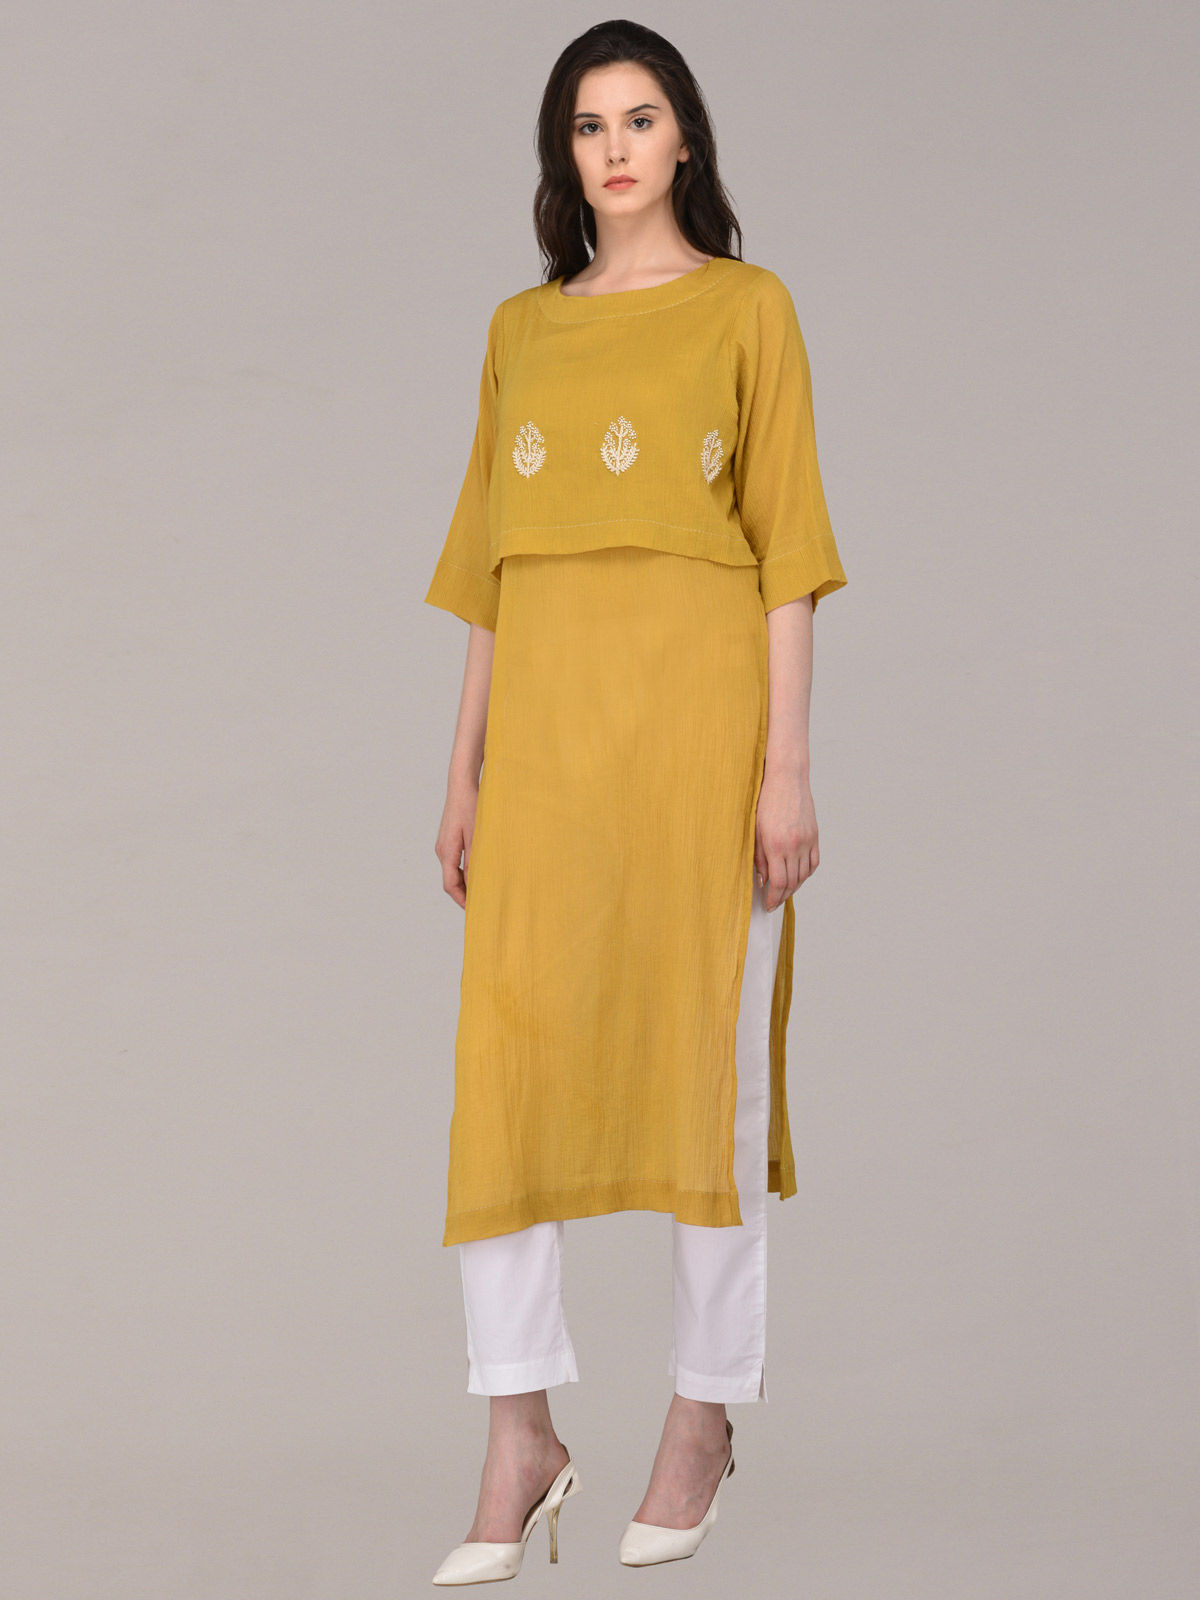 Panachee hand embroidered mustard pure cotton kurti